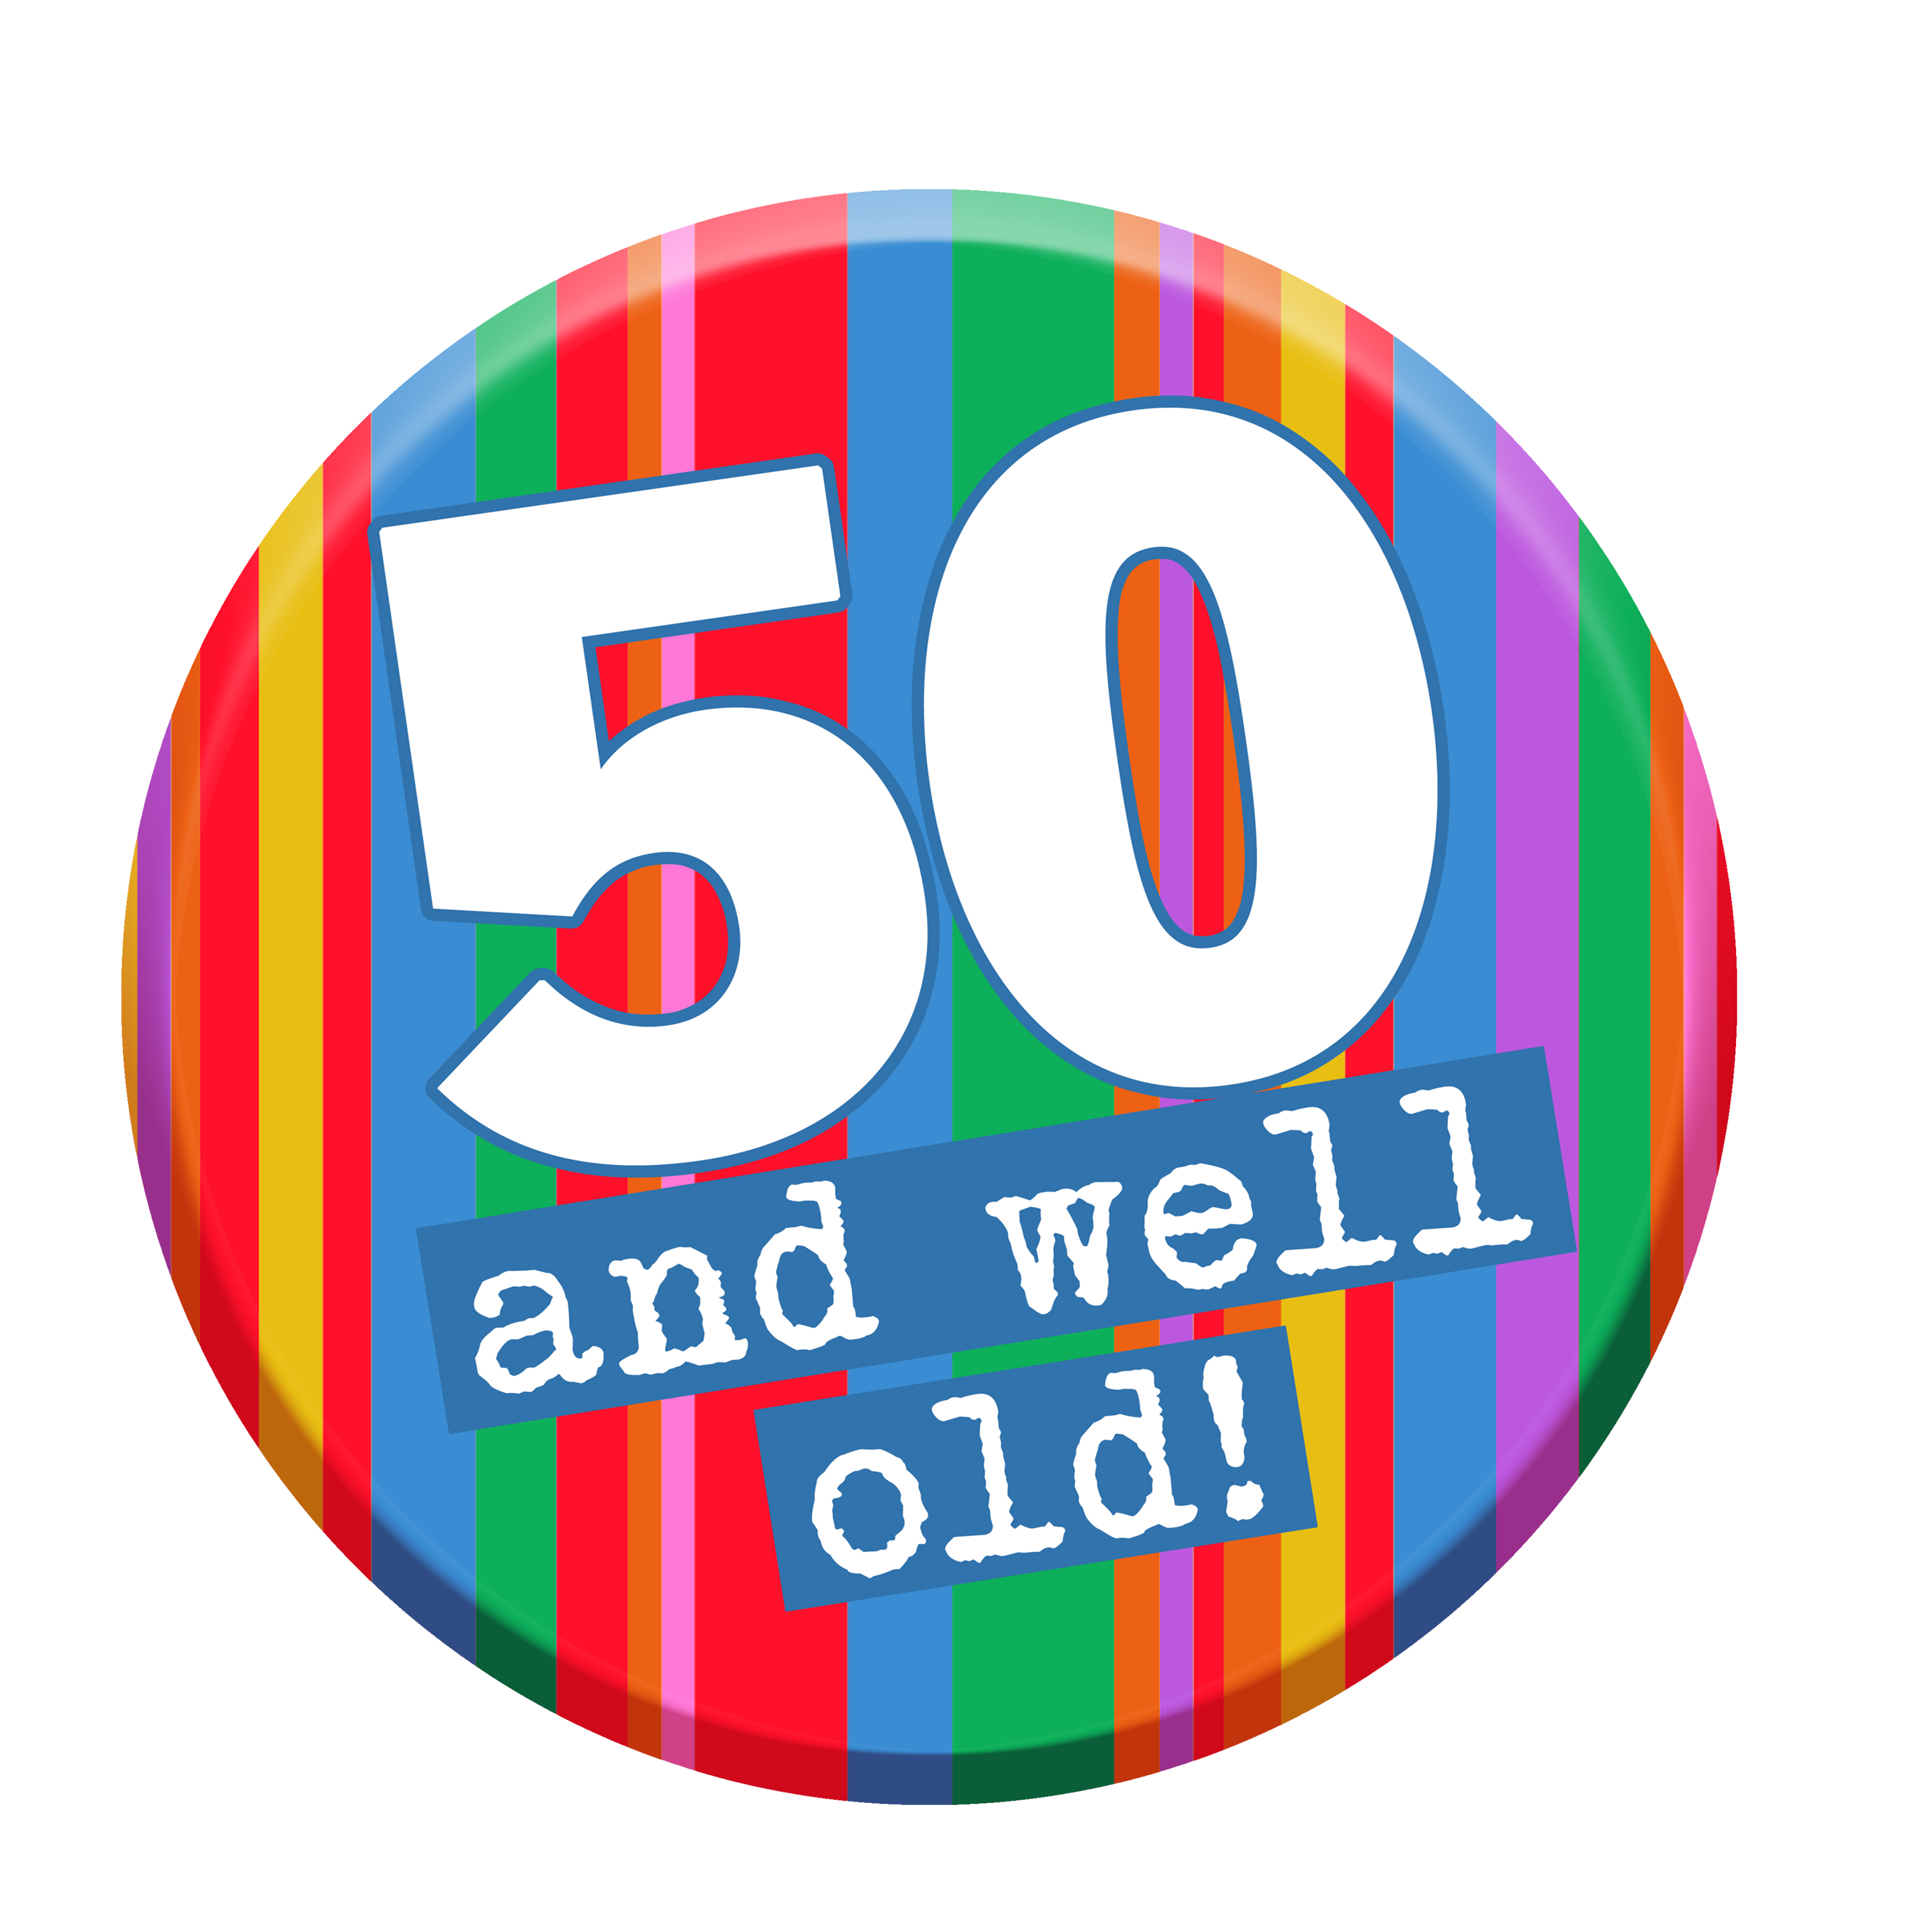 50 Well Old Birthday Badge - Cheeky 50th Birthday Gift